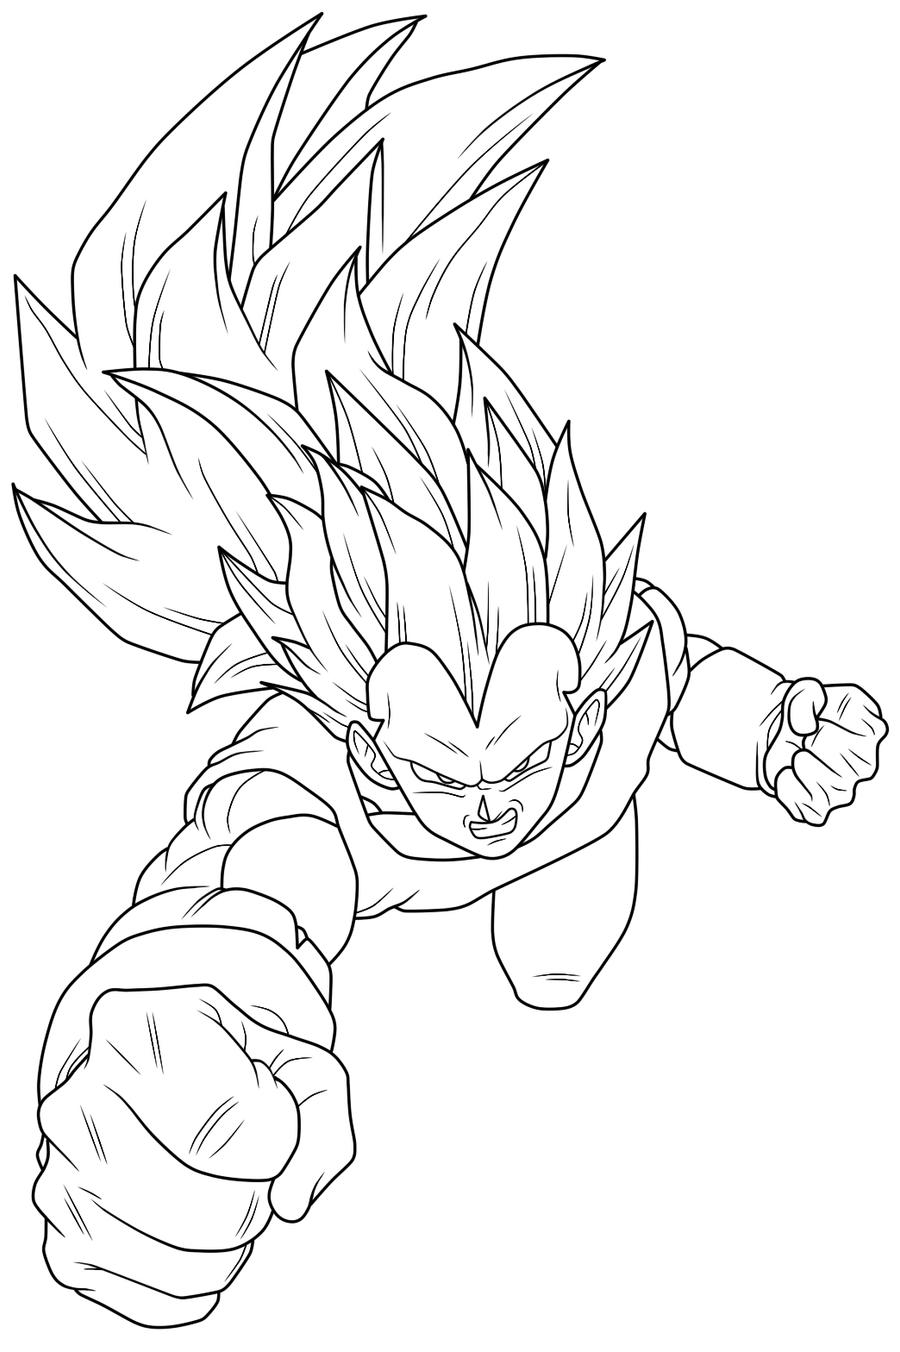 Vegeta ssj3 pages coloring pages for Dragon ball z vegeta coloring pages